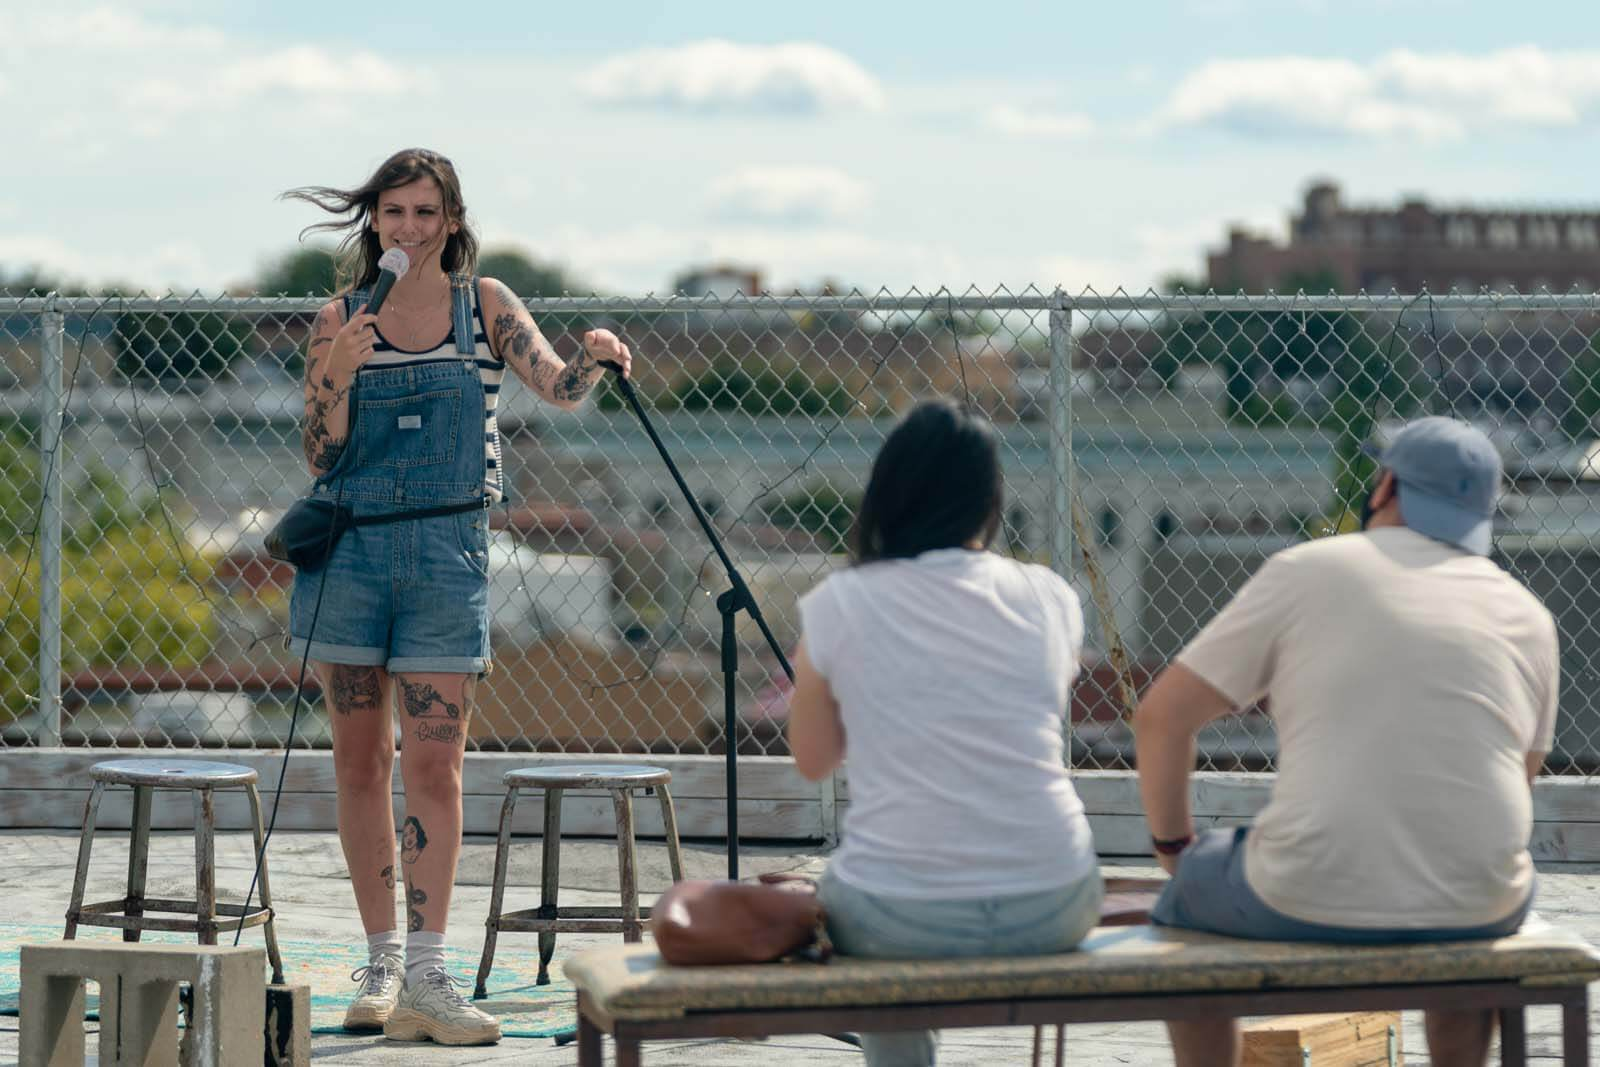 comedian Natalie Cuomo performin gat Tiny Cupboard rooftop comedy show in brooklyn